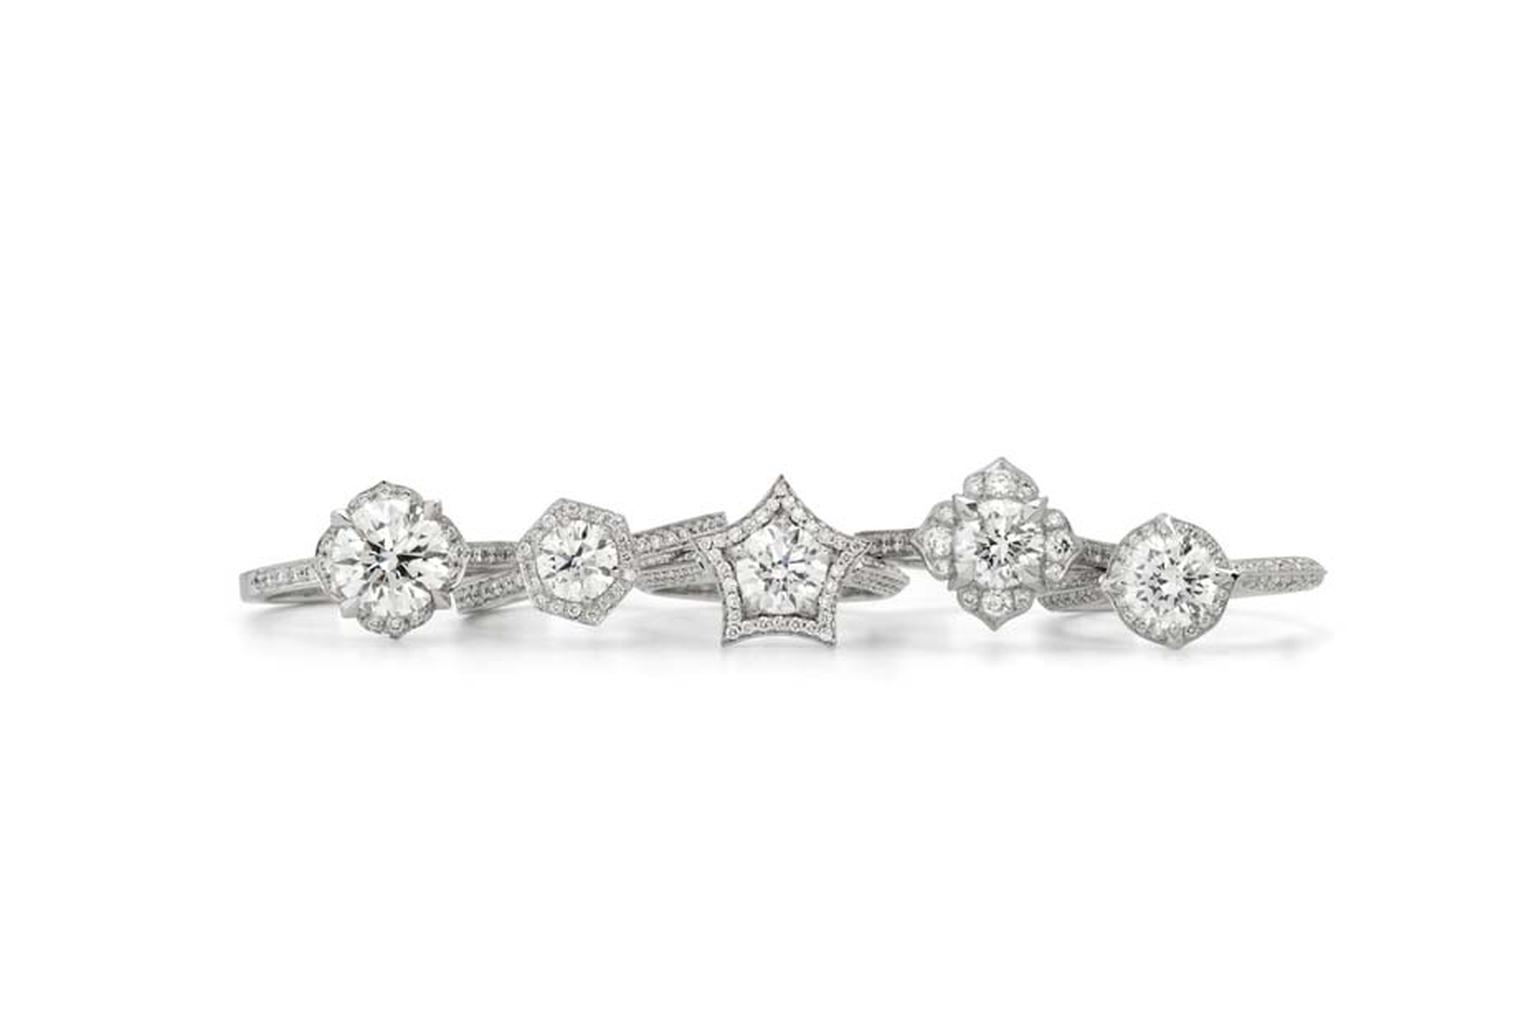 Stephen Webster's second bridal range of rings